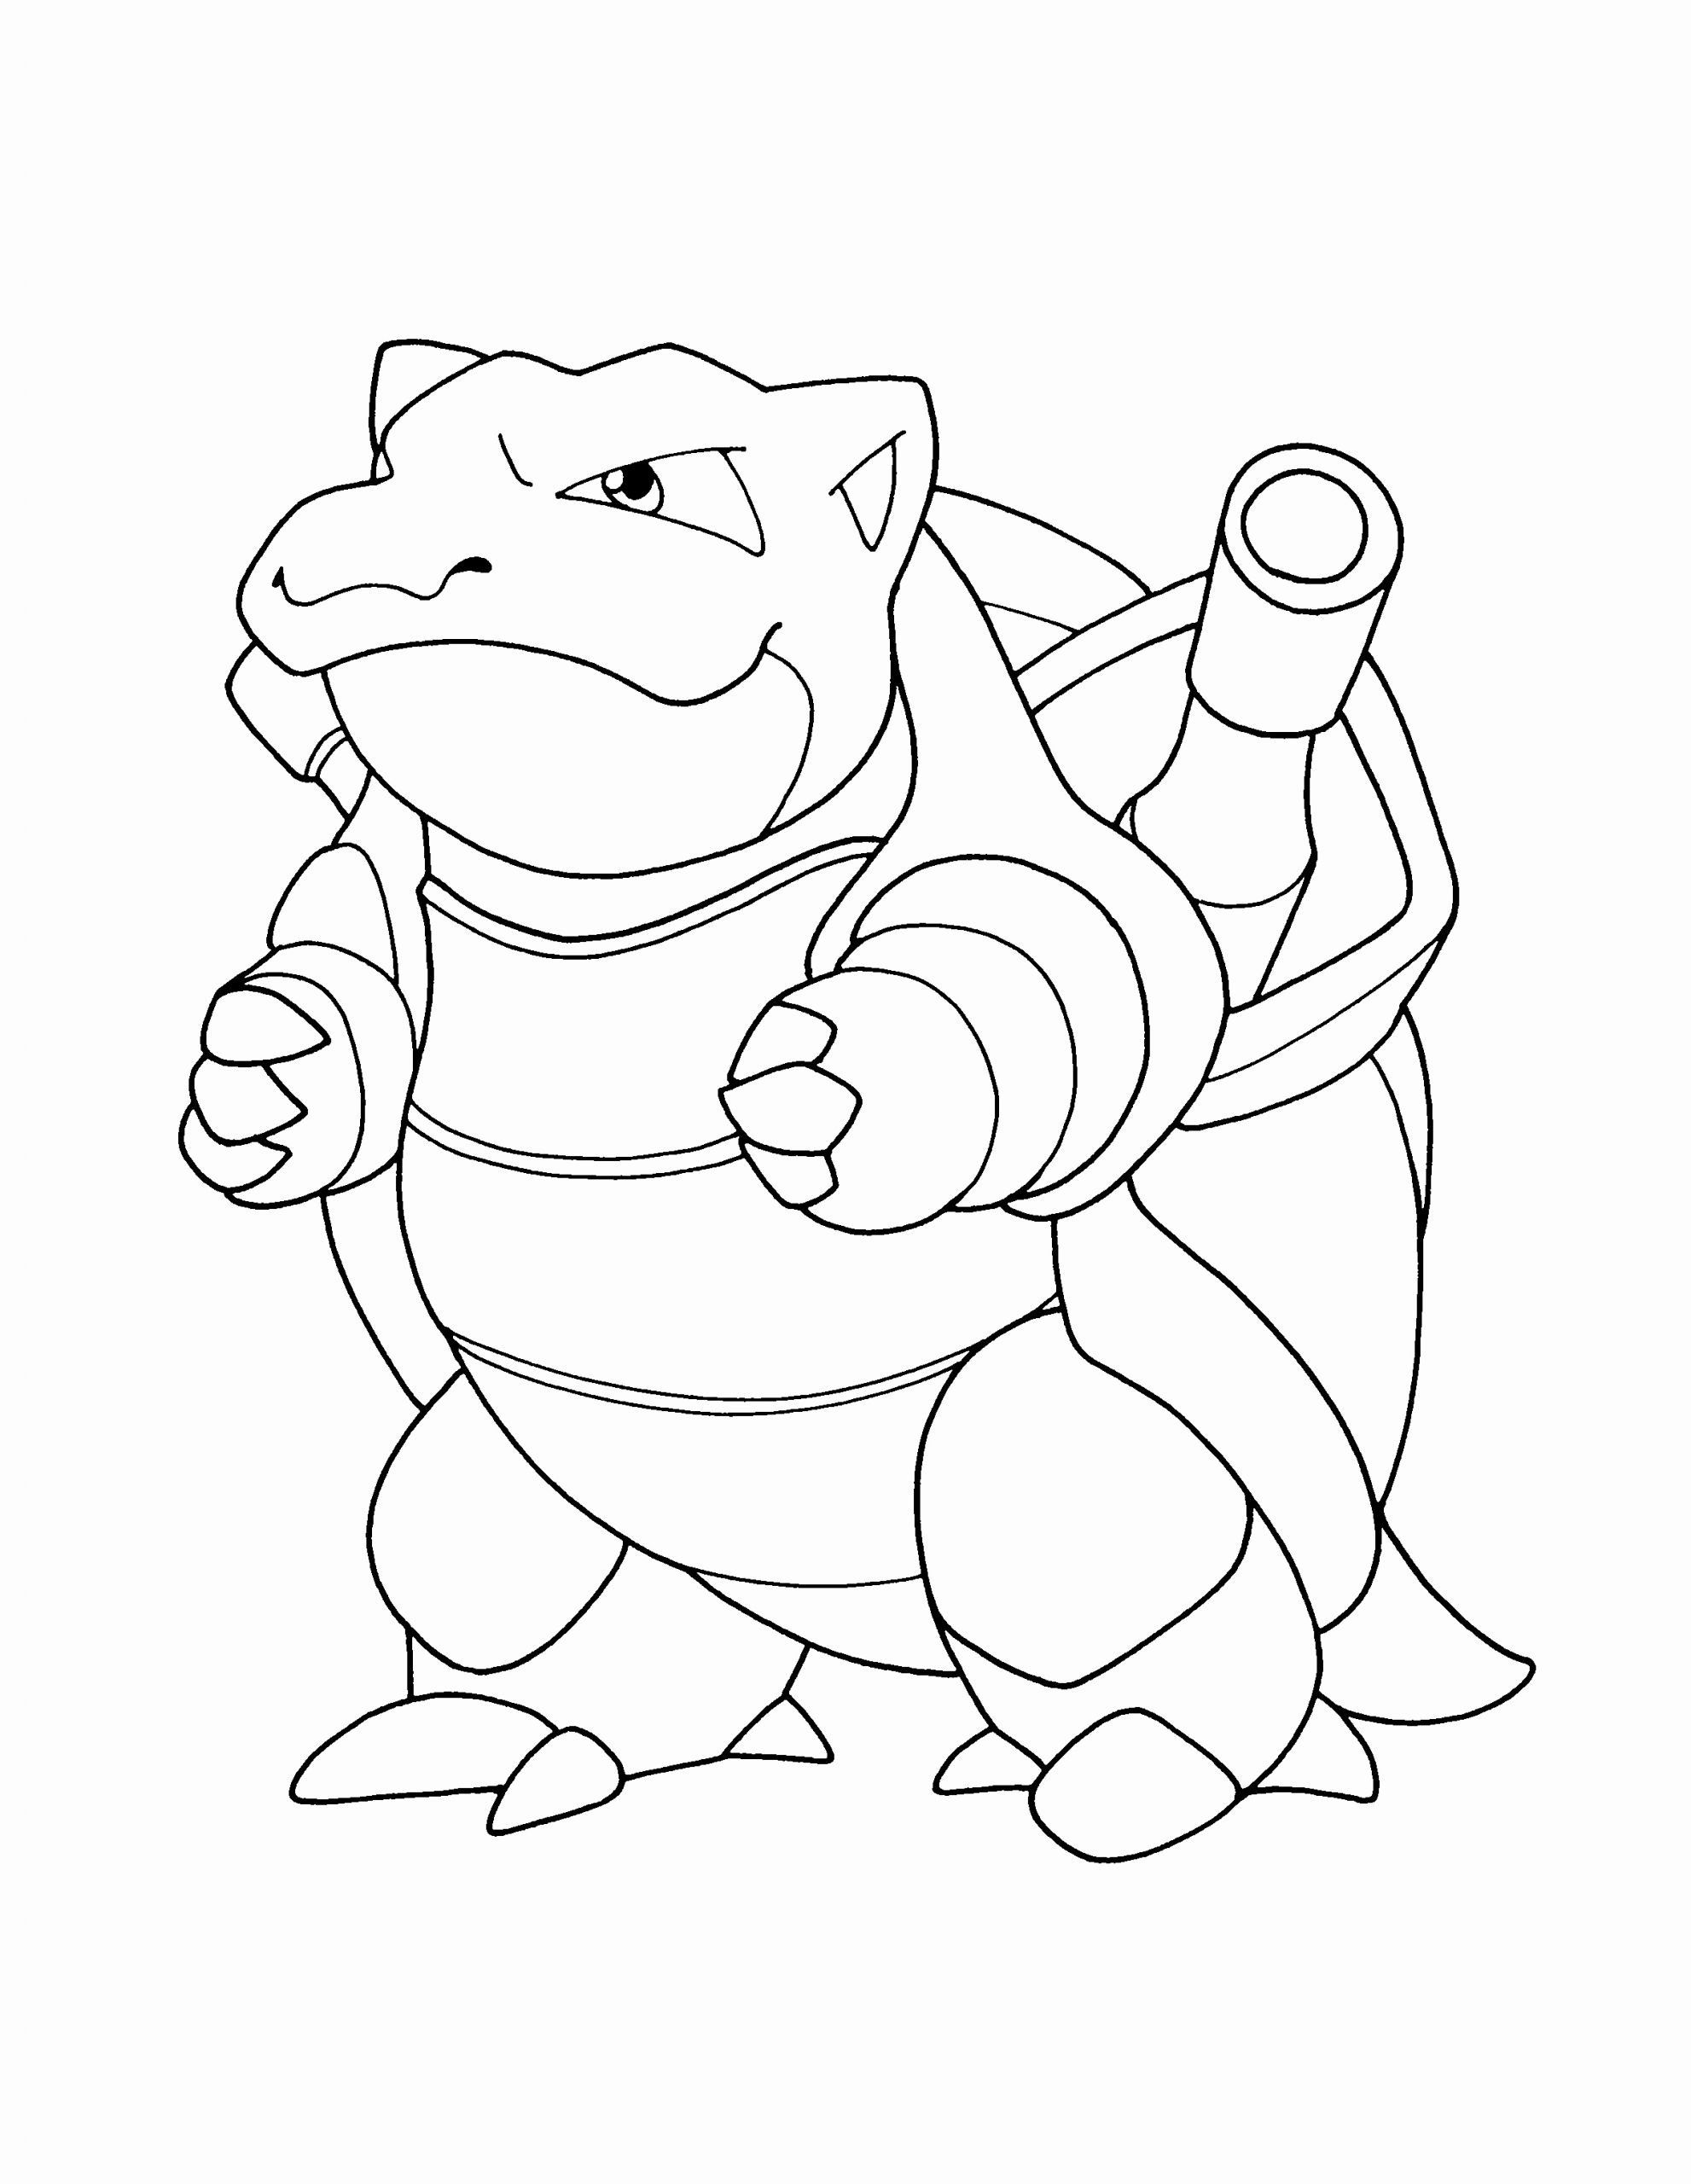 Mega Blastoise Coloring Page Awesome Pokemon Coloring Pages Mega Blastoise Free Coloring Librar In 2020 Pokemon Coloring Pages Pokemon Coloring Pokemon Coloring Sheets